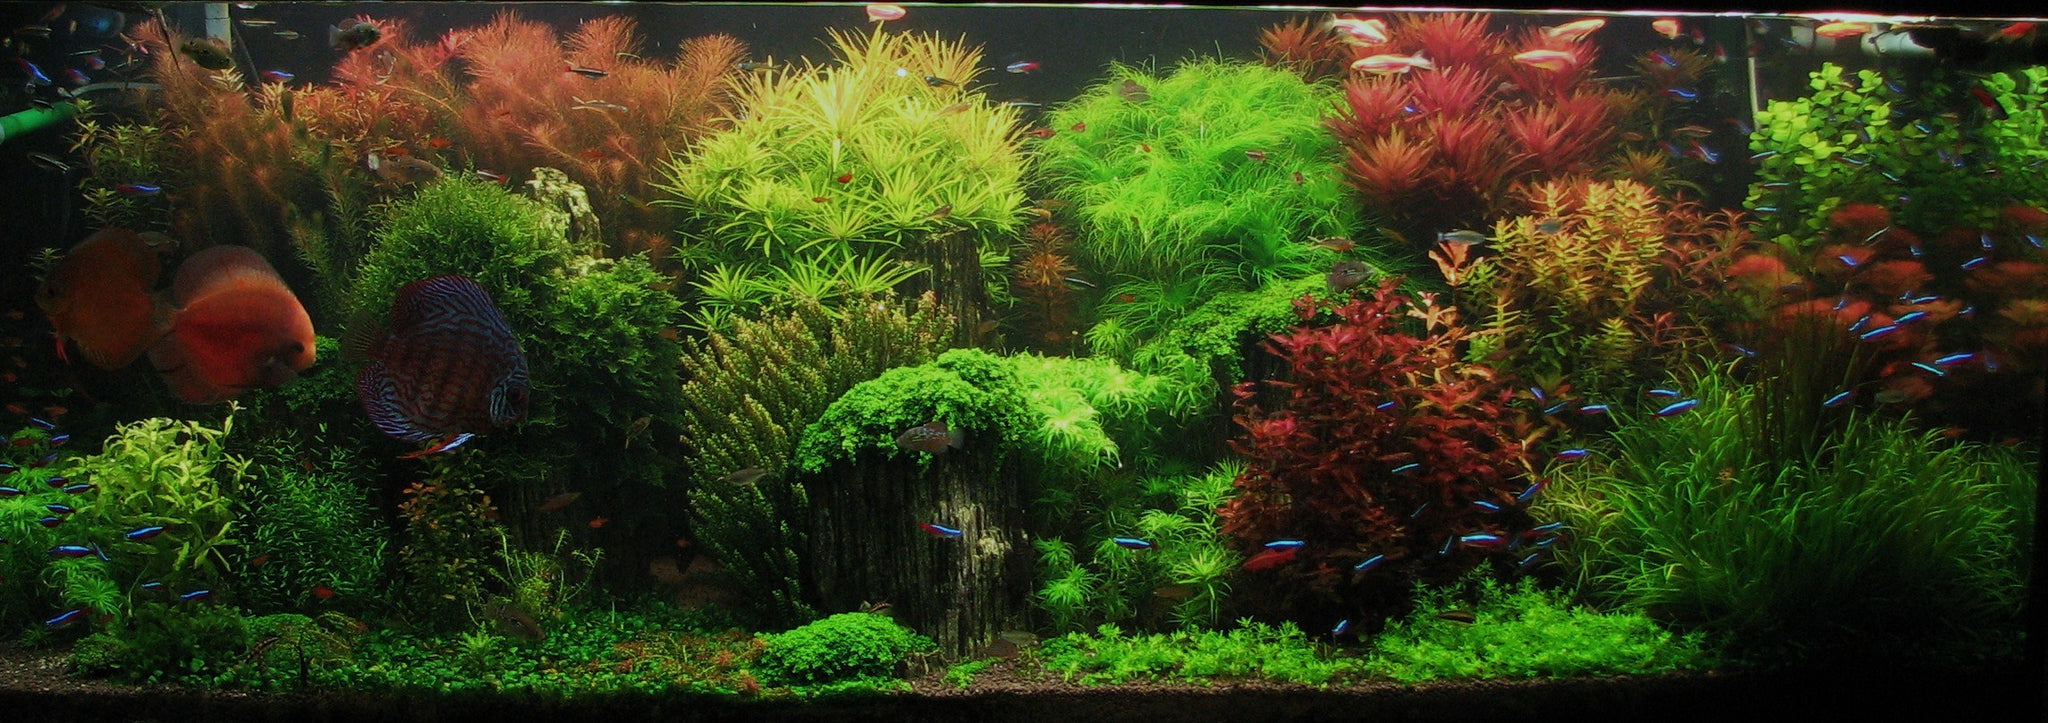 Charmant Top 5 Modern Aquascaping Designs For Your Freshwater Fish Aquarium